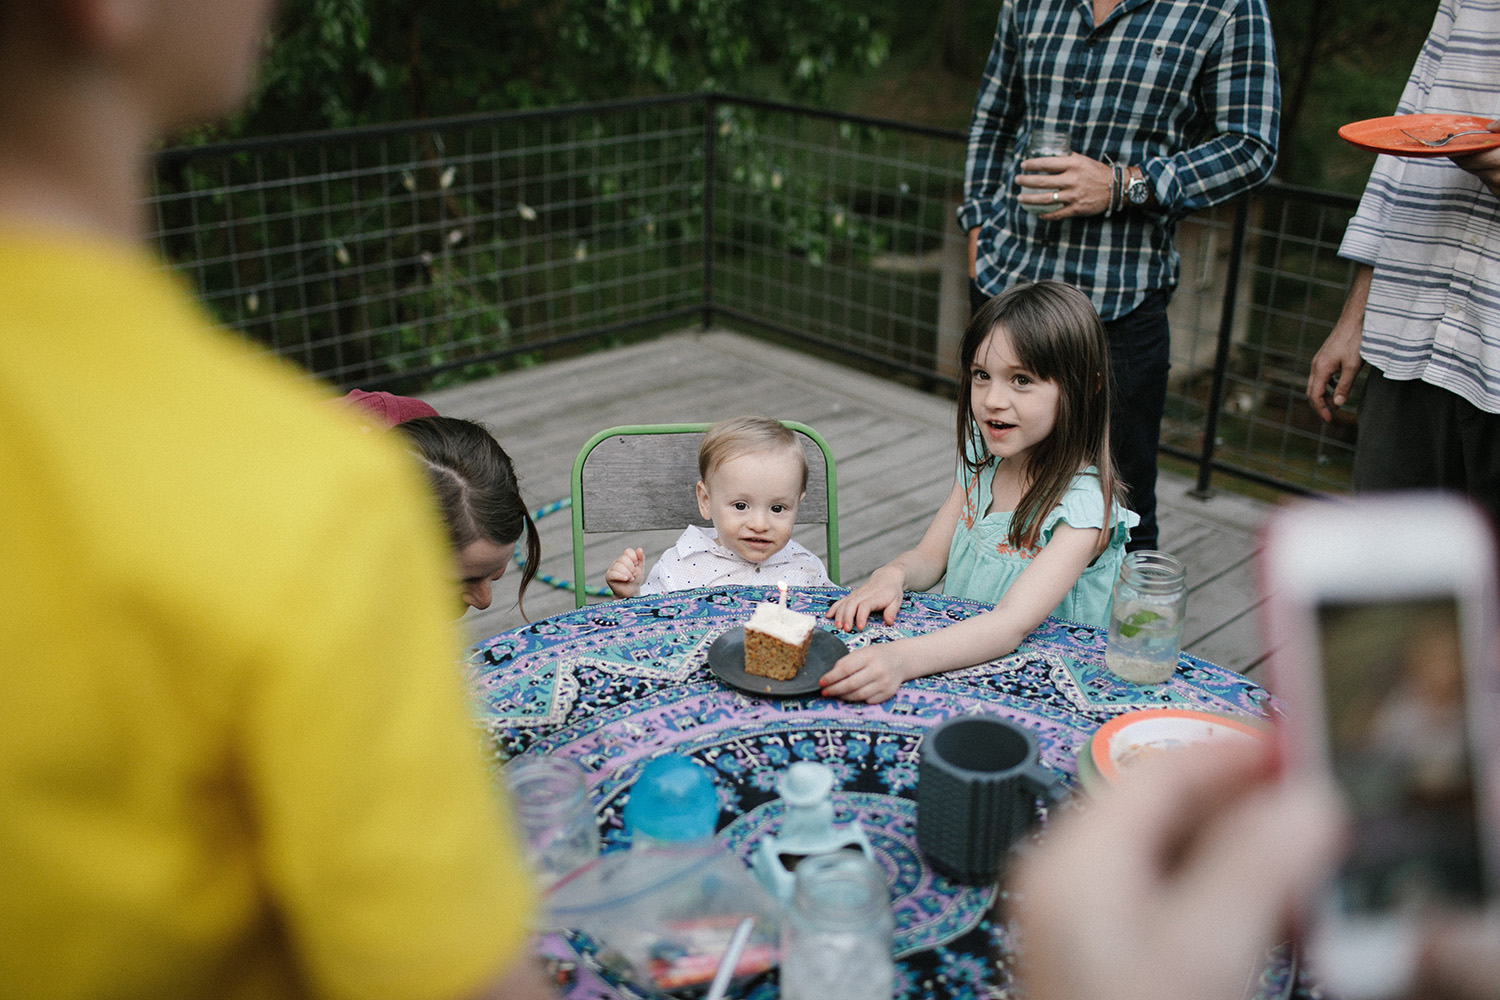 Atlanta Documentary Family Photography 096.jpg